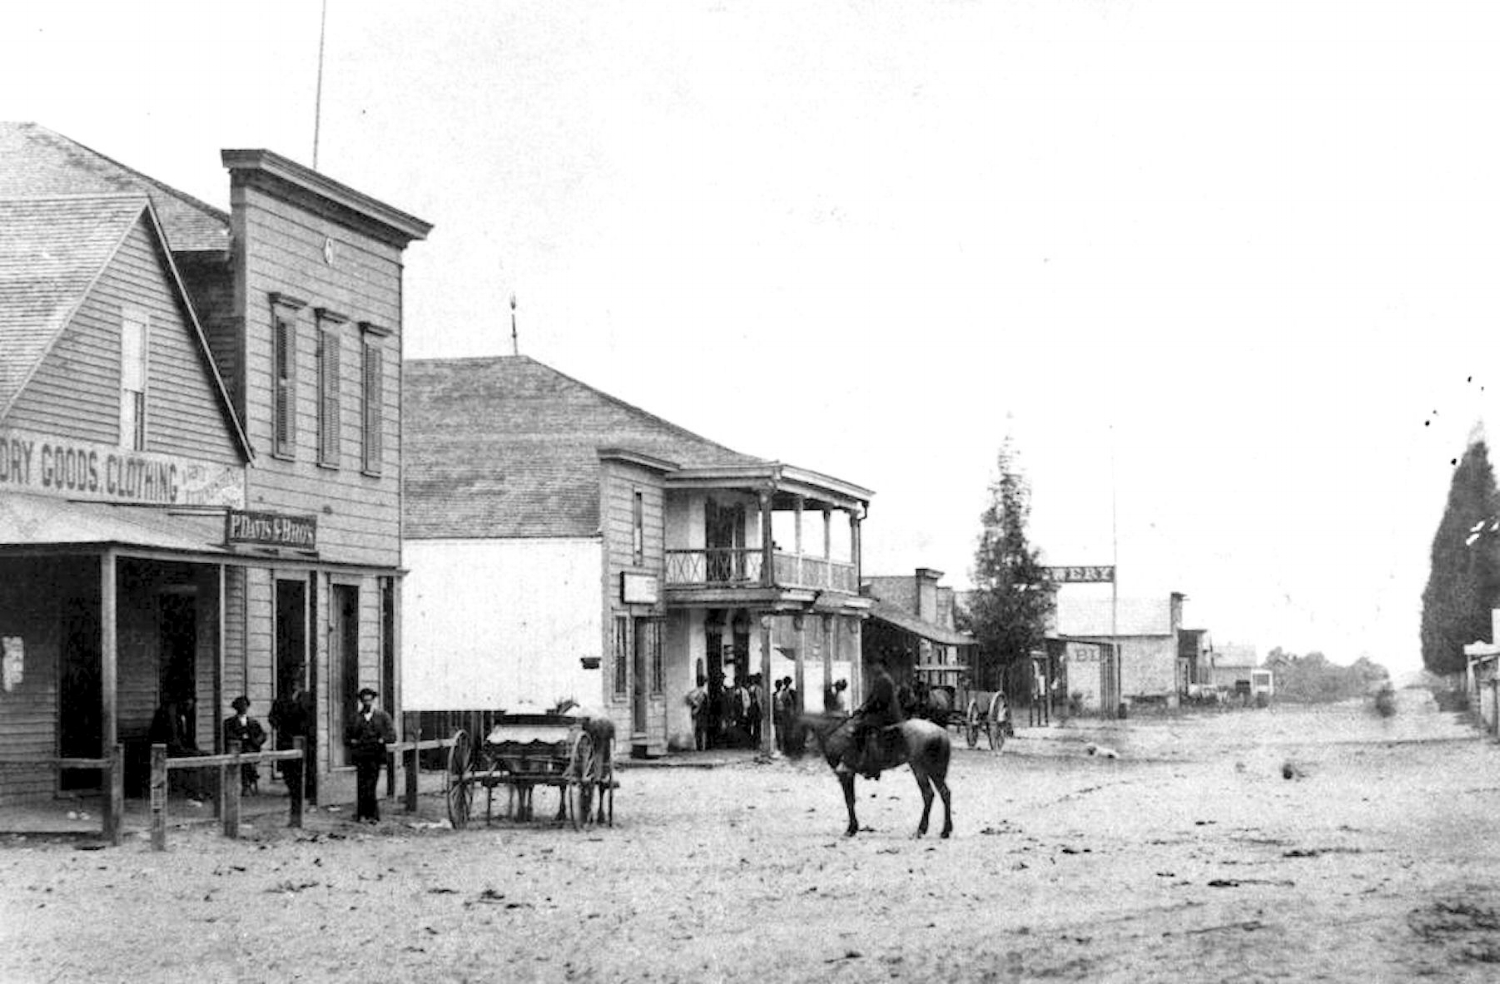 Center Street, Anaheim, ca 1873 (Courtesy the Anaheim Public Library).